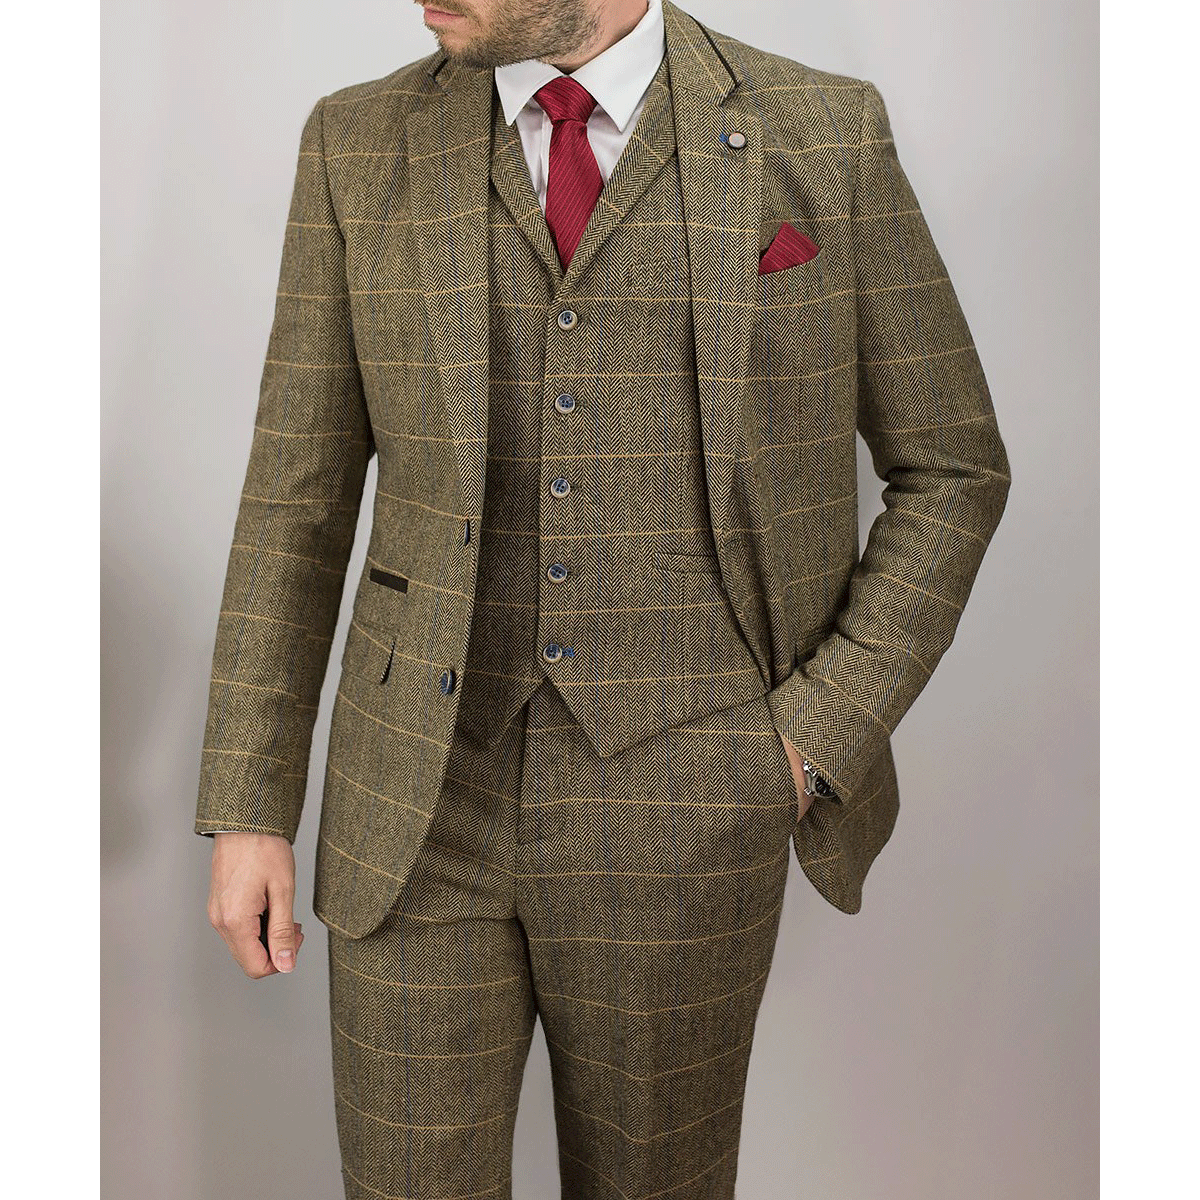 Brown Tweed 3Piece Suit